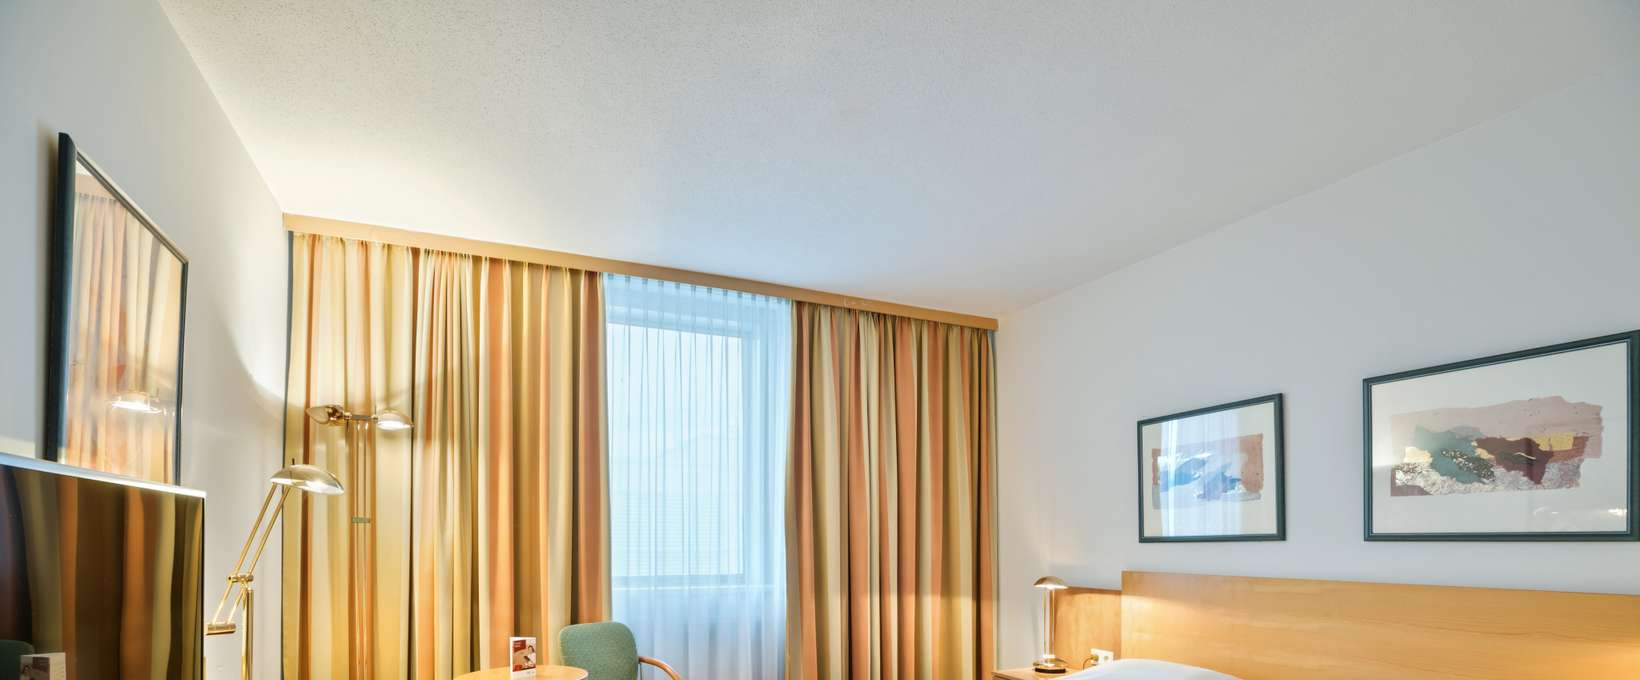 Classic Room with double bed, desk and TV | Hotel Salzburg West